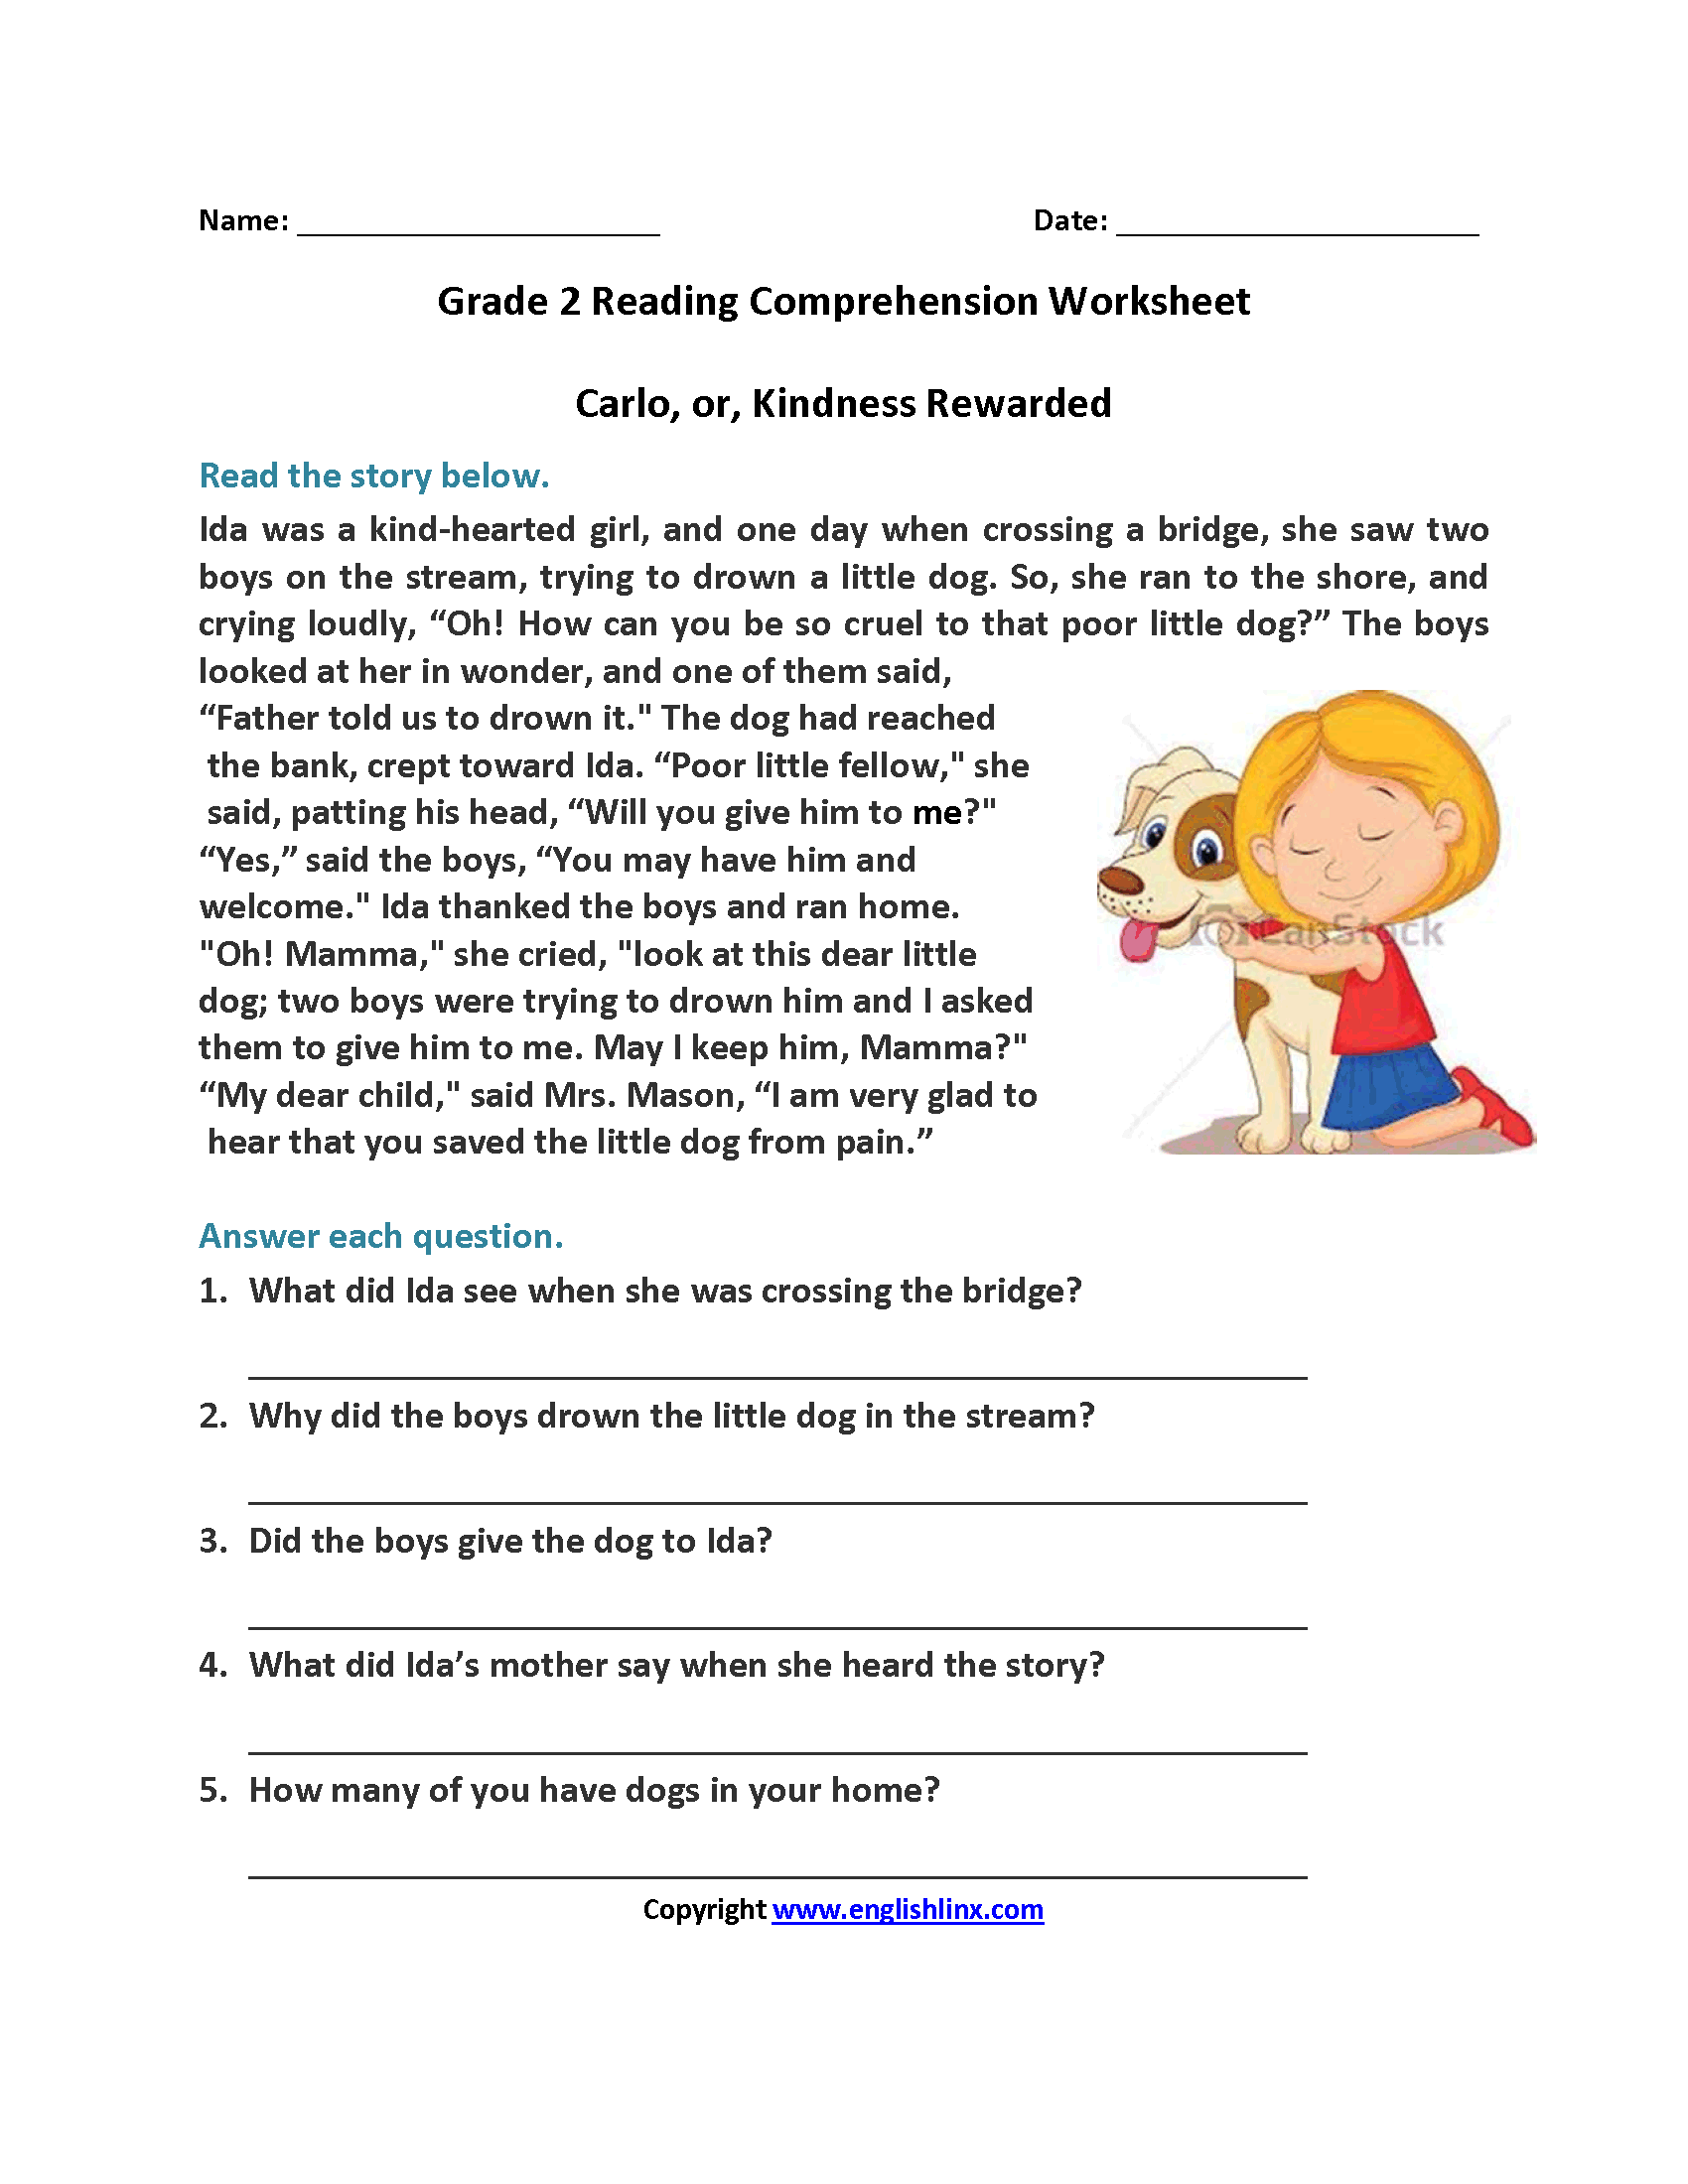 Carlo Or Kindness Rewarded Second Grade Reading Worksh…   2nd grade reading  worksheets [ 2200 x 1700 Pixel ]